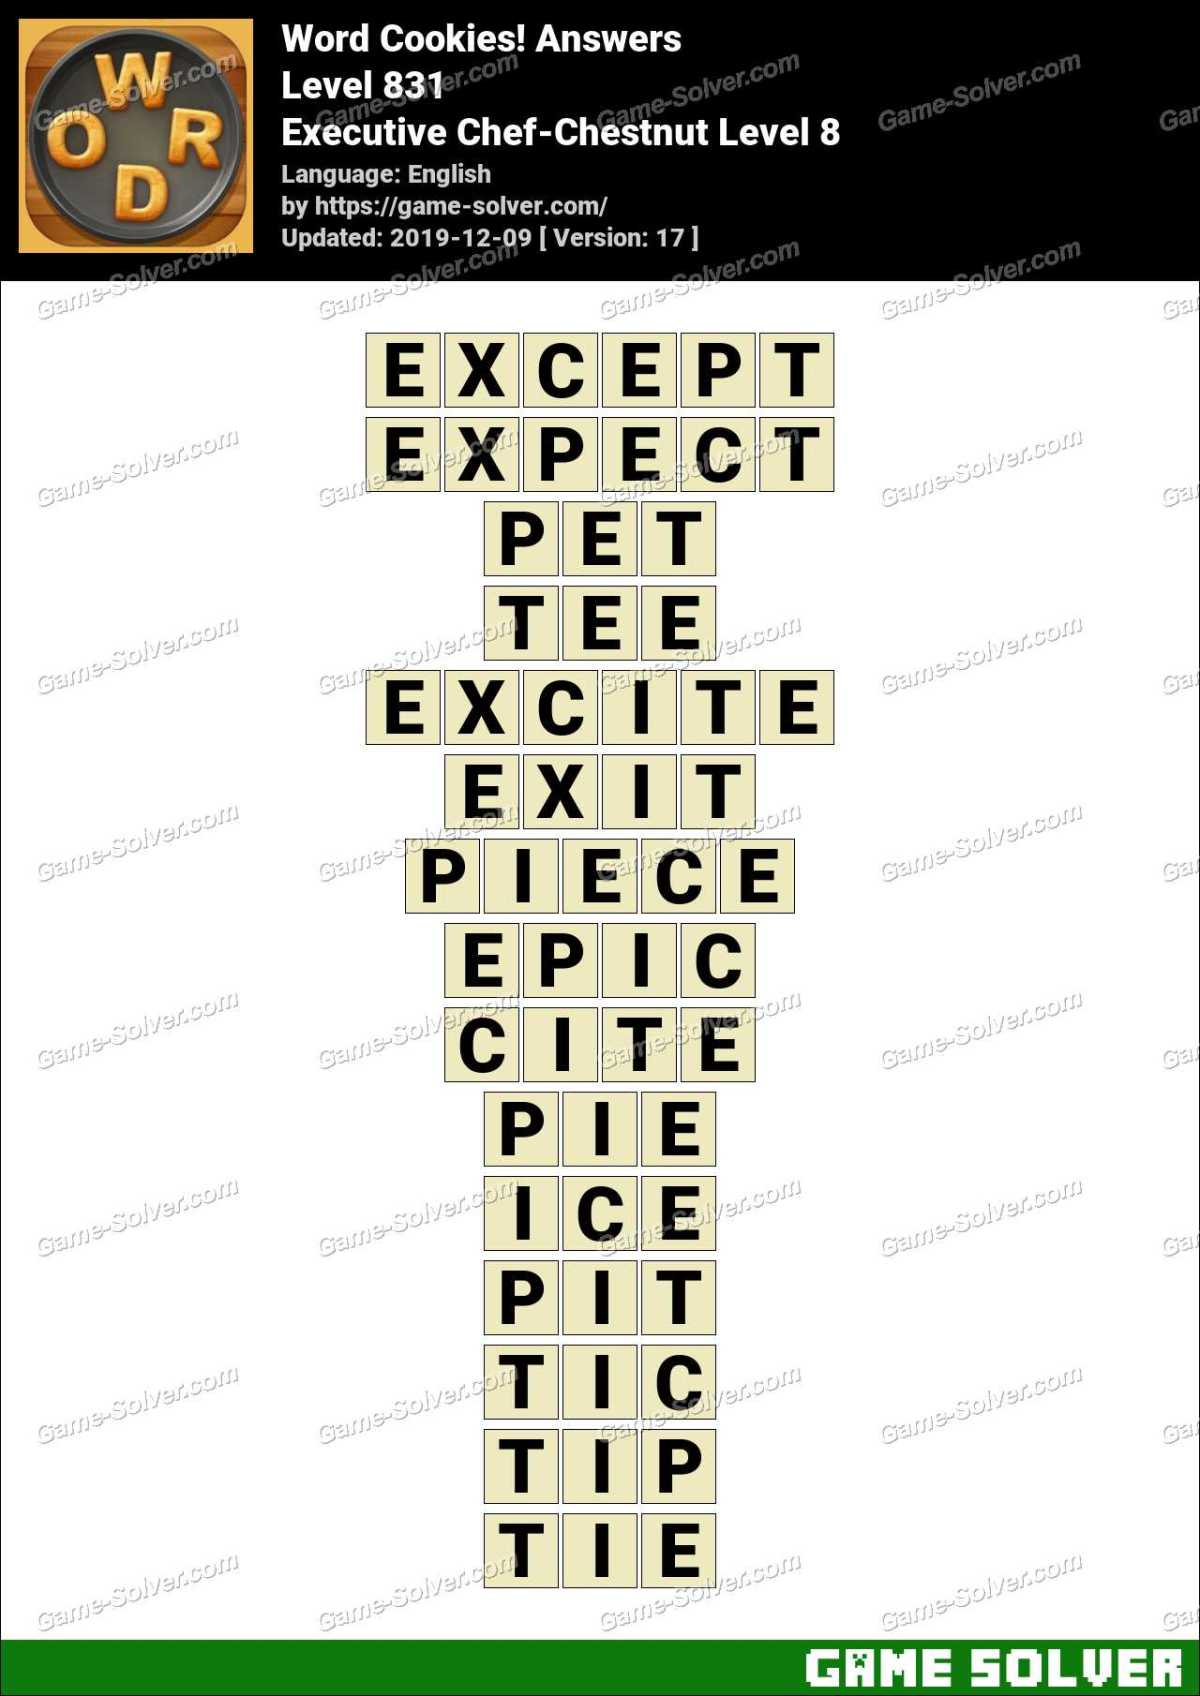 Word Cookies Executive Chef-Chestnut Level 8 Answers